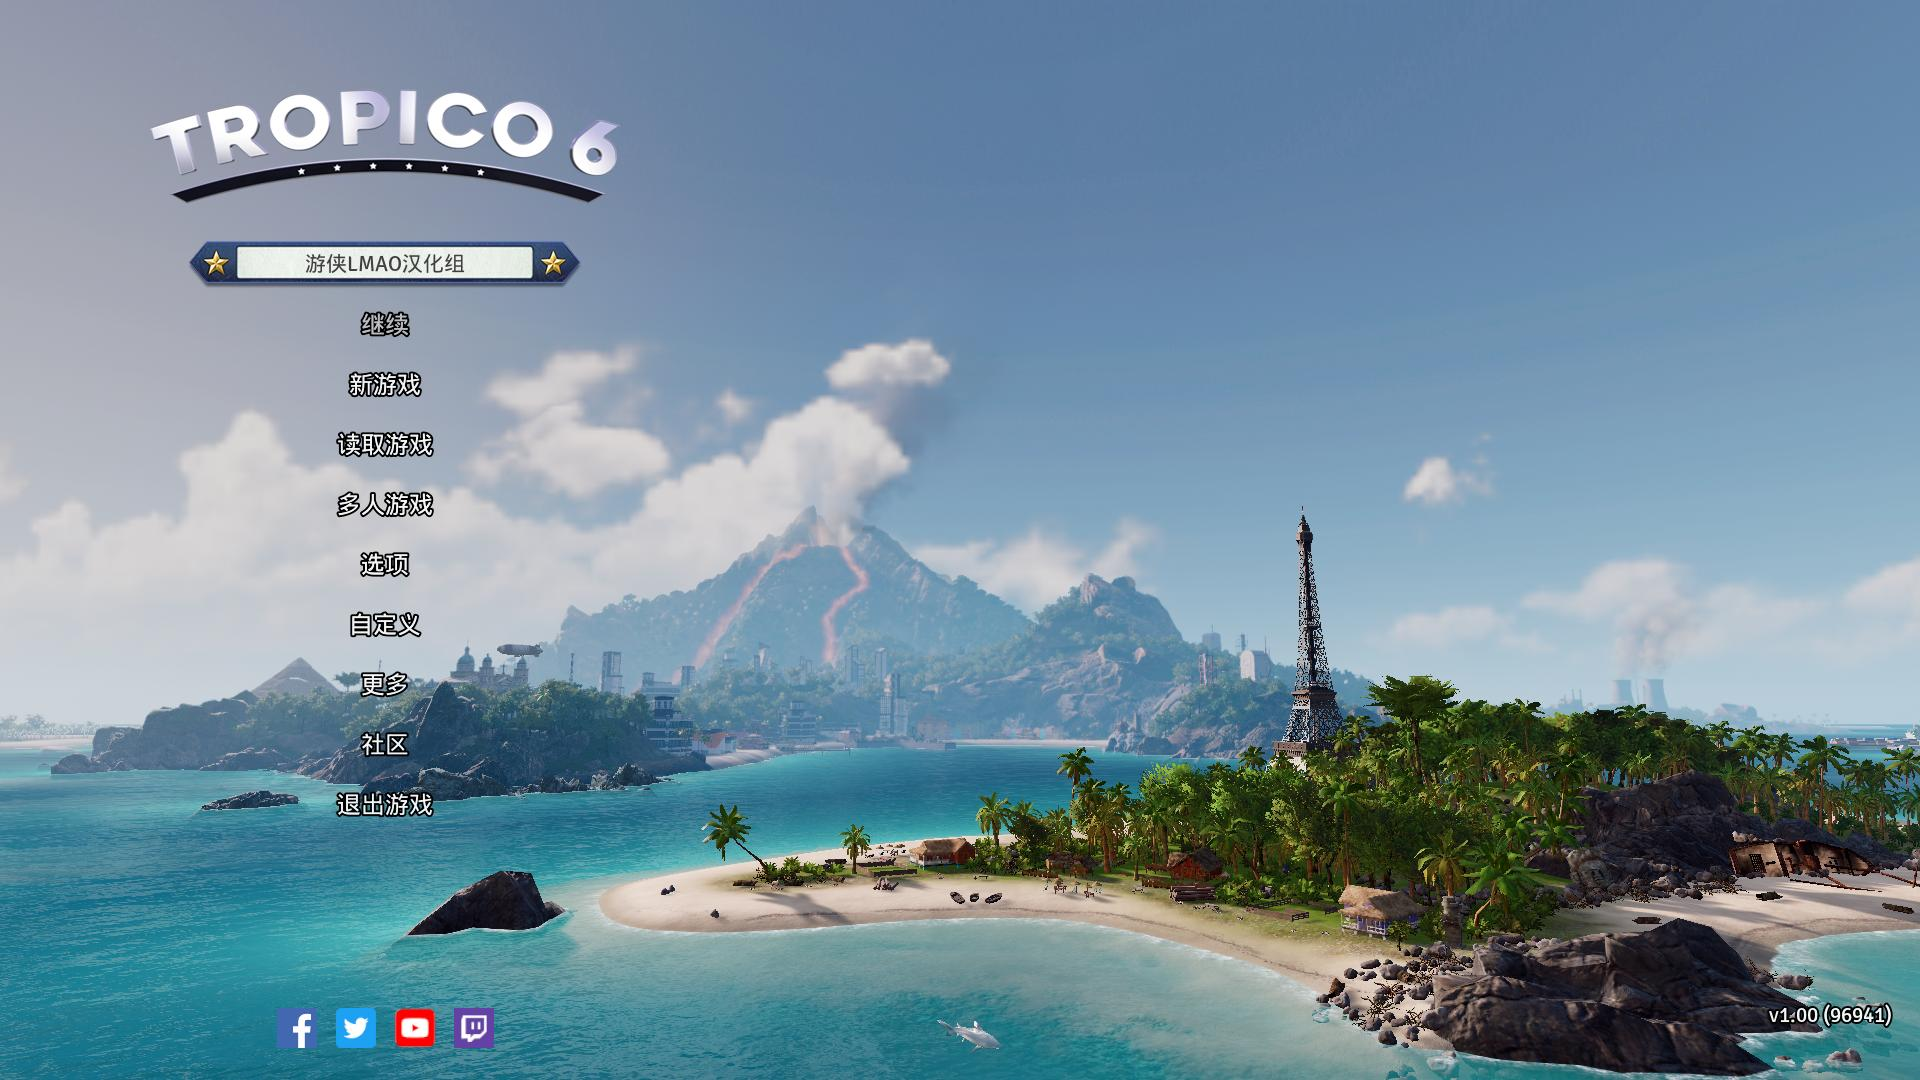 Tropico6-Win64-Shipping 2019-04-01 18-54-31-11.jpg